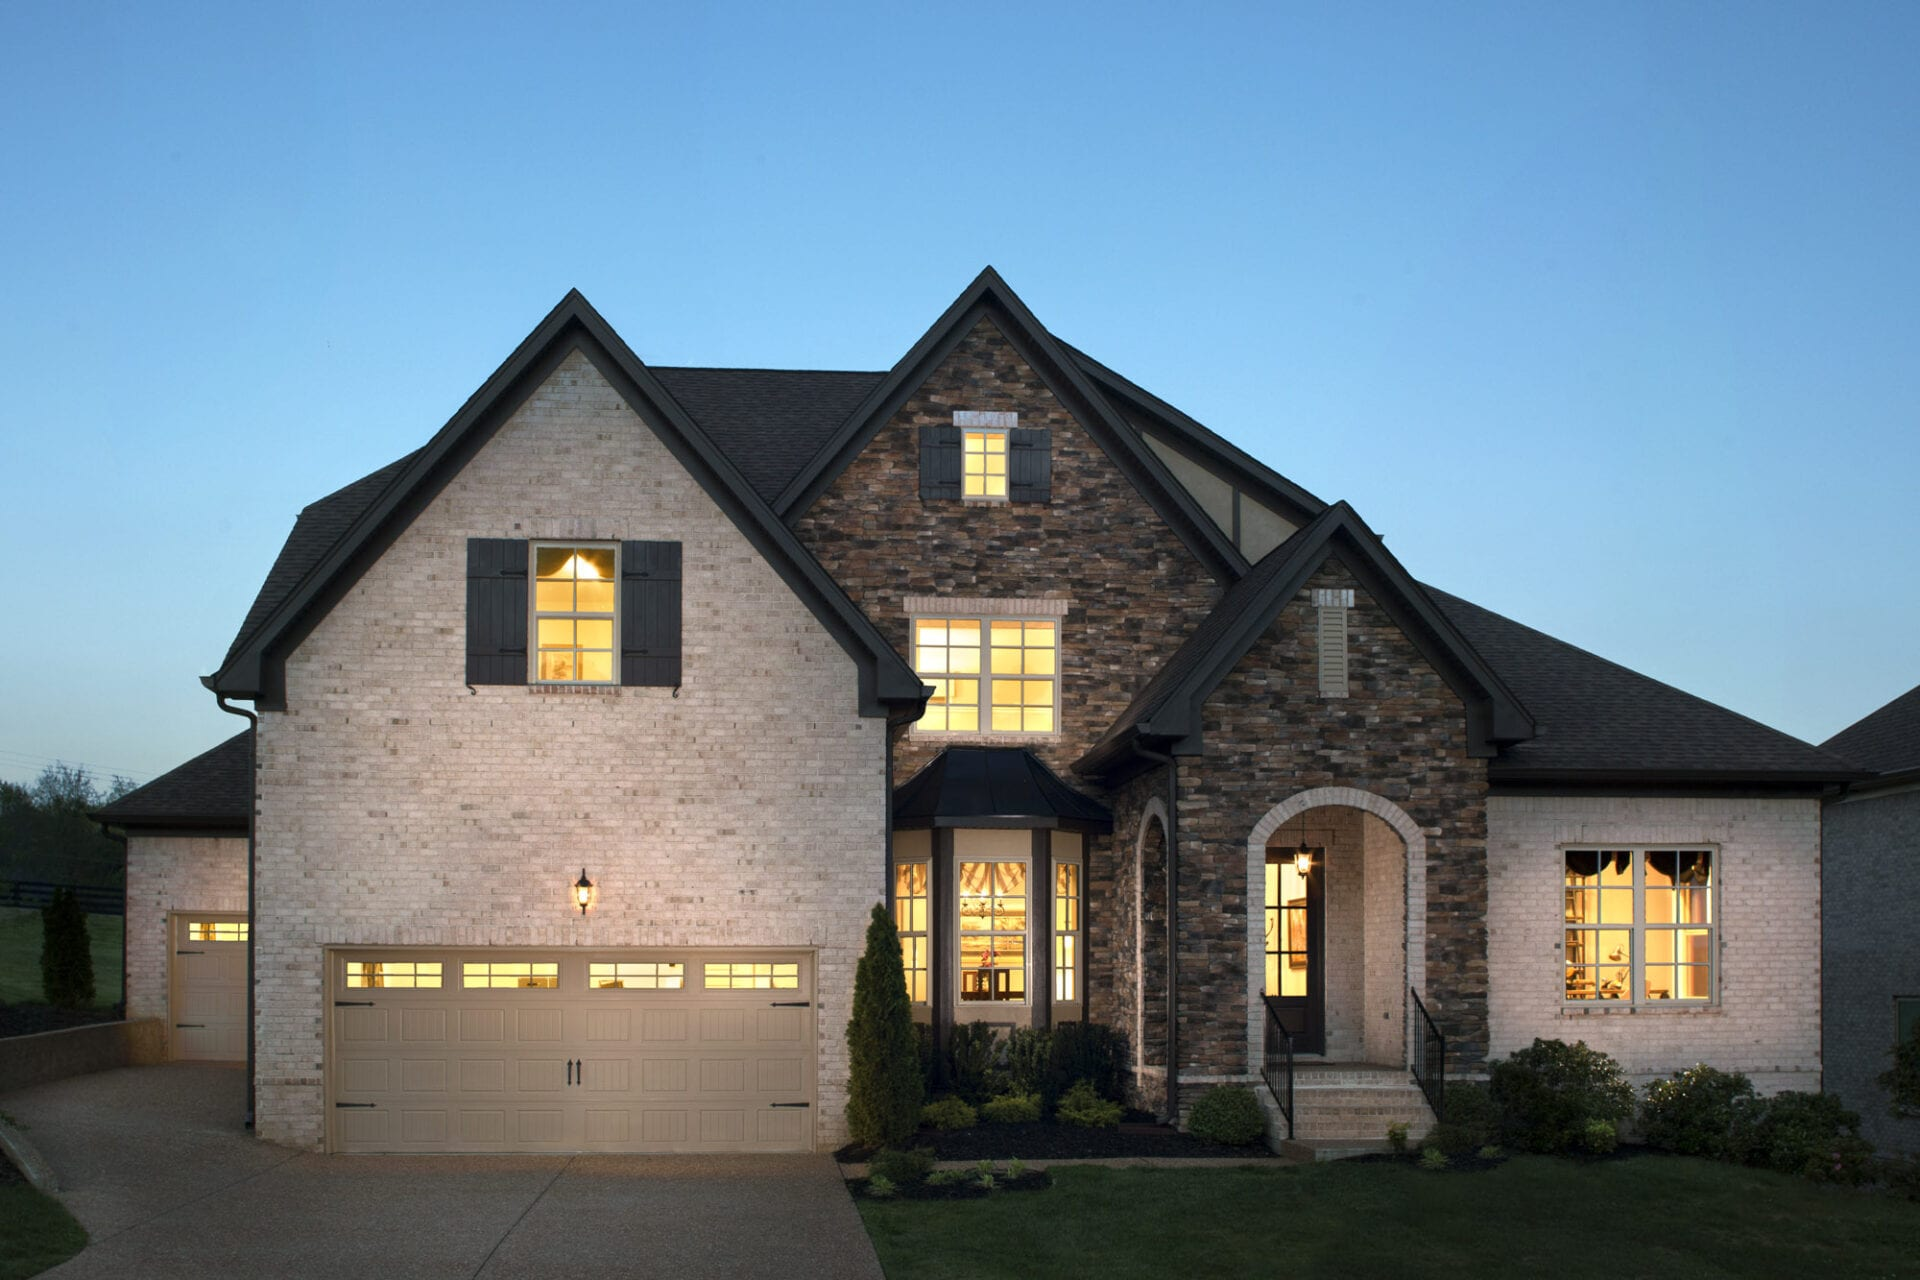 Dalamar custom home builder offers a 1-year Warranty Program for New Homes for sale in New Home Communities Nashville